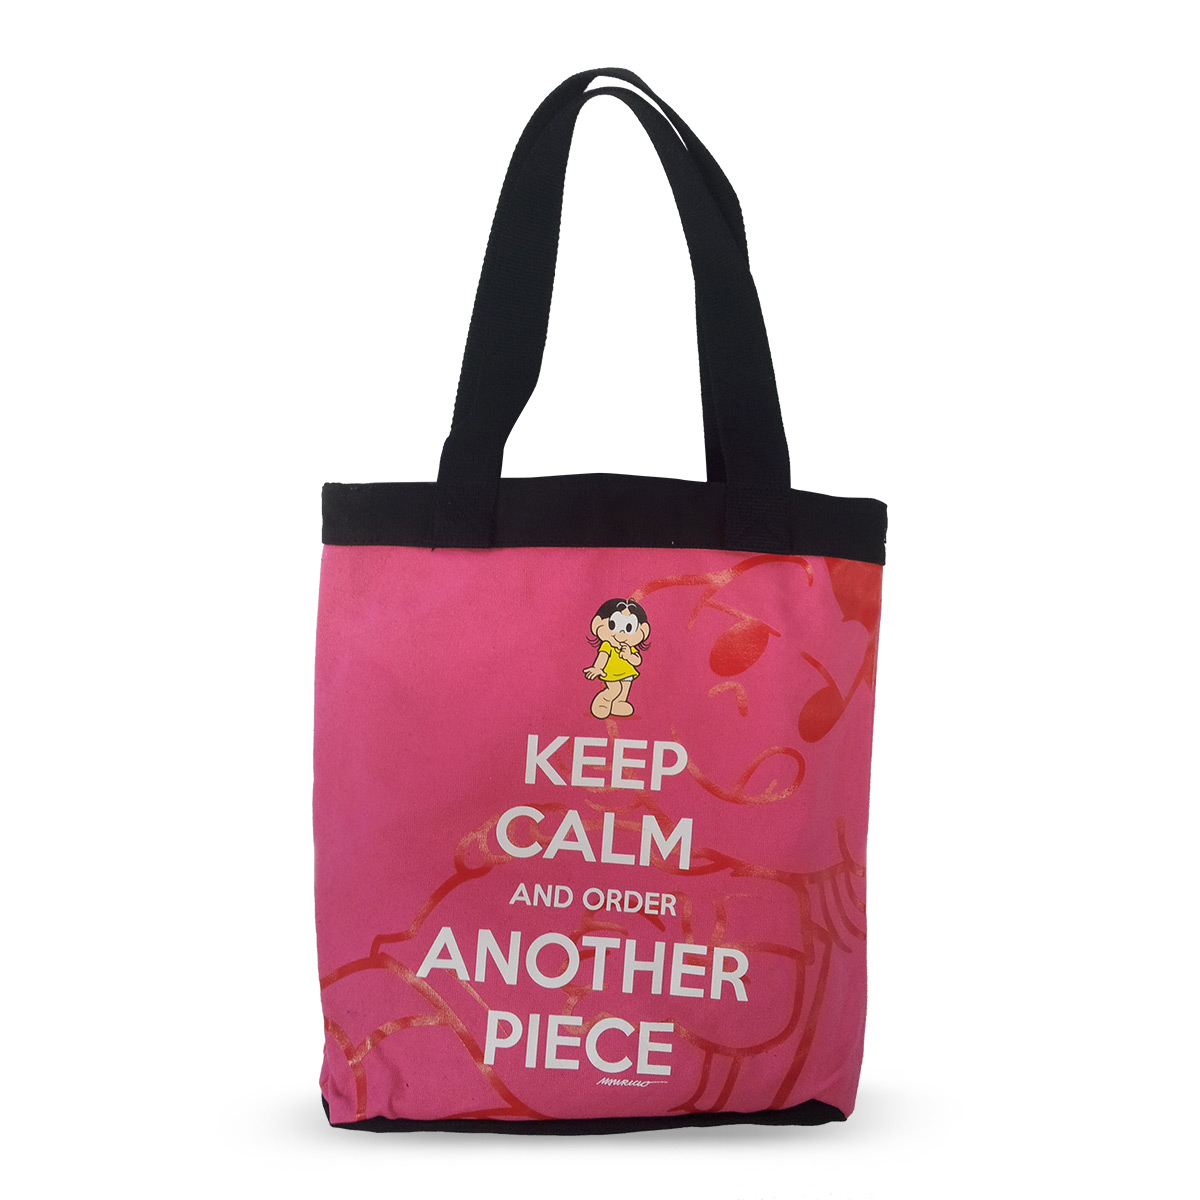 Bolsa Turma da Mônica Keep Calm And Order Another Piece 753025C